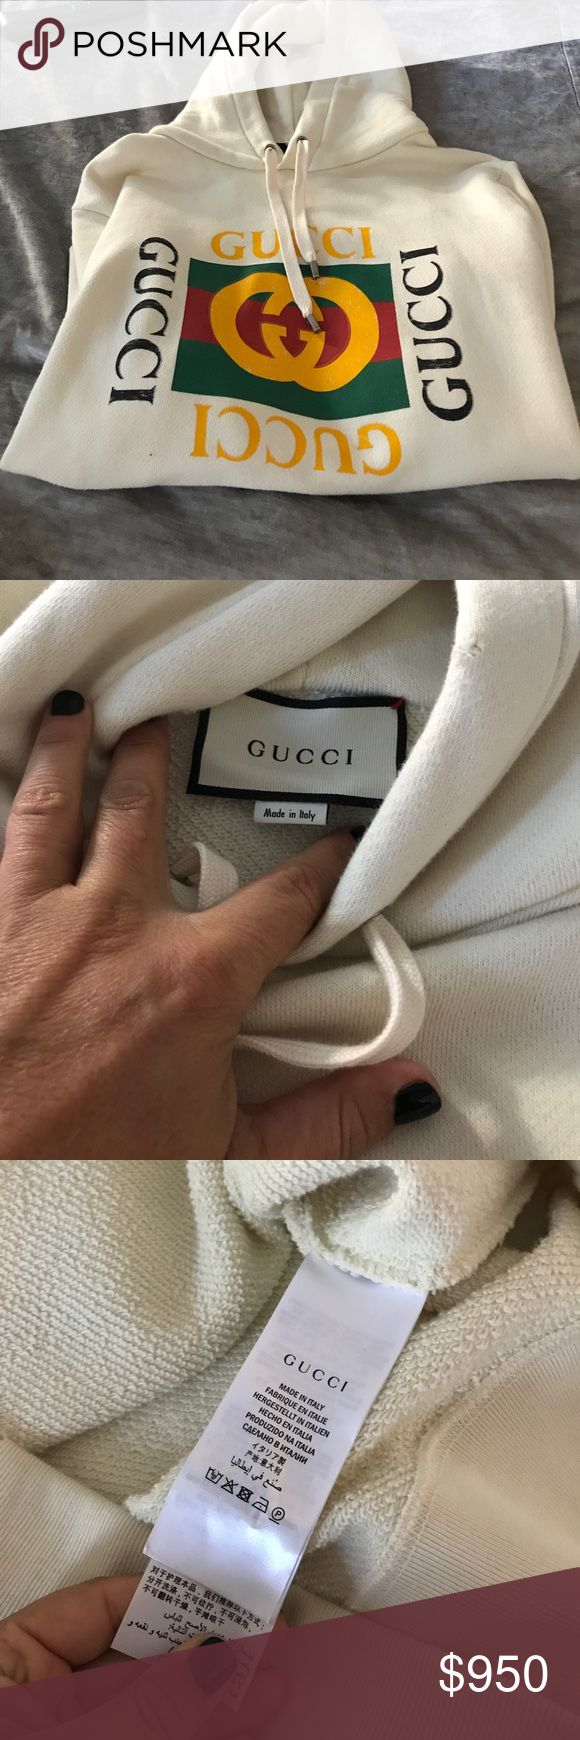 100% Authentic Gucci sweatshirt 100% Authentic Gucci sweatshirt Purchased from Gucci online worn only a few times comes with tags and receipts retail $1200 unisex small Gucci Tops Sweatshirts & Hoodies